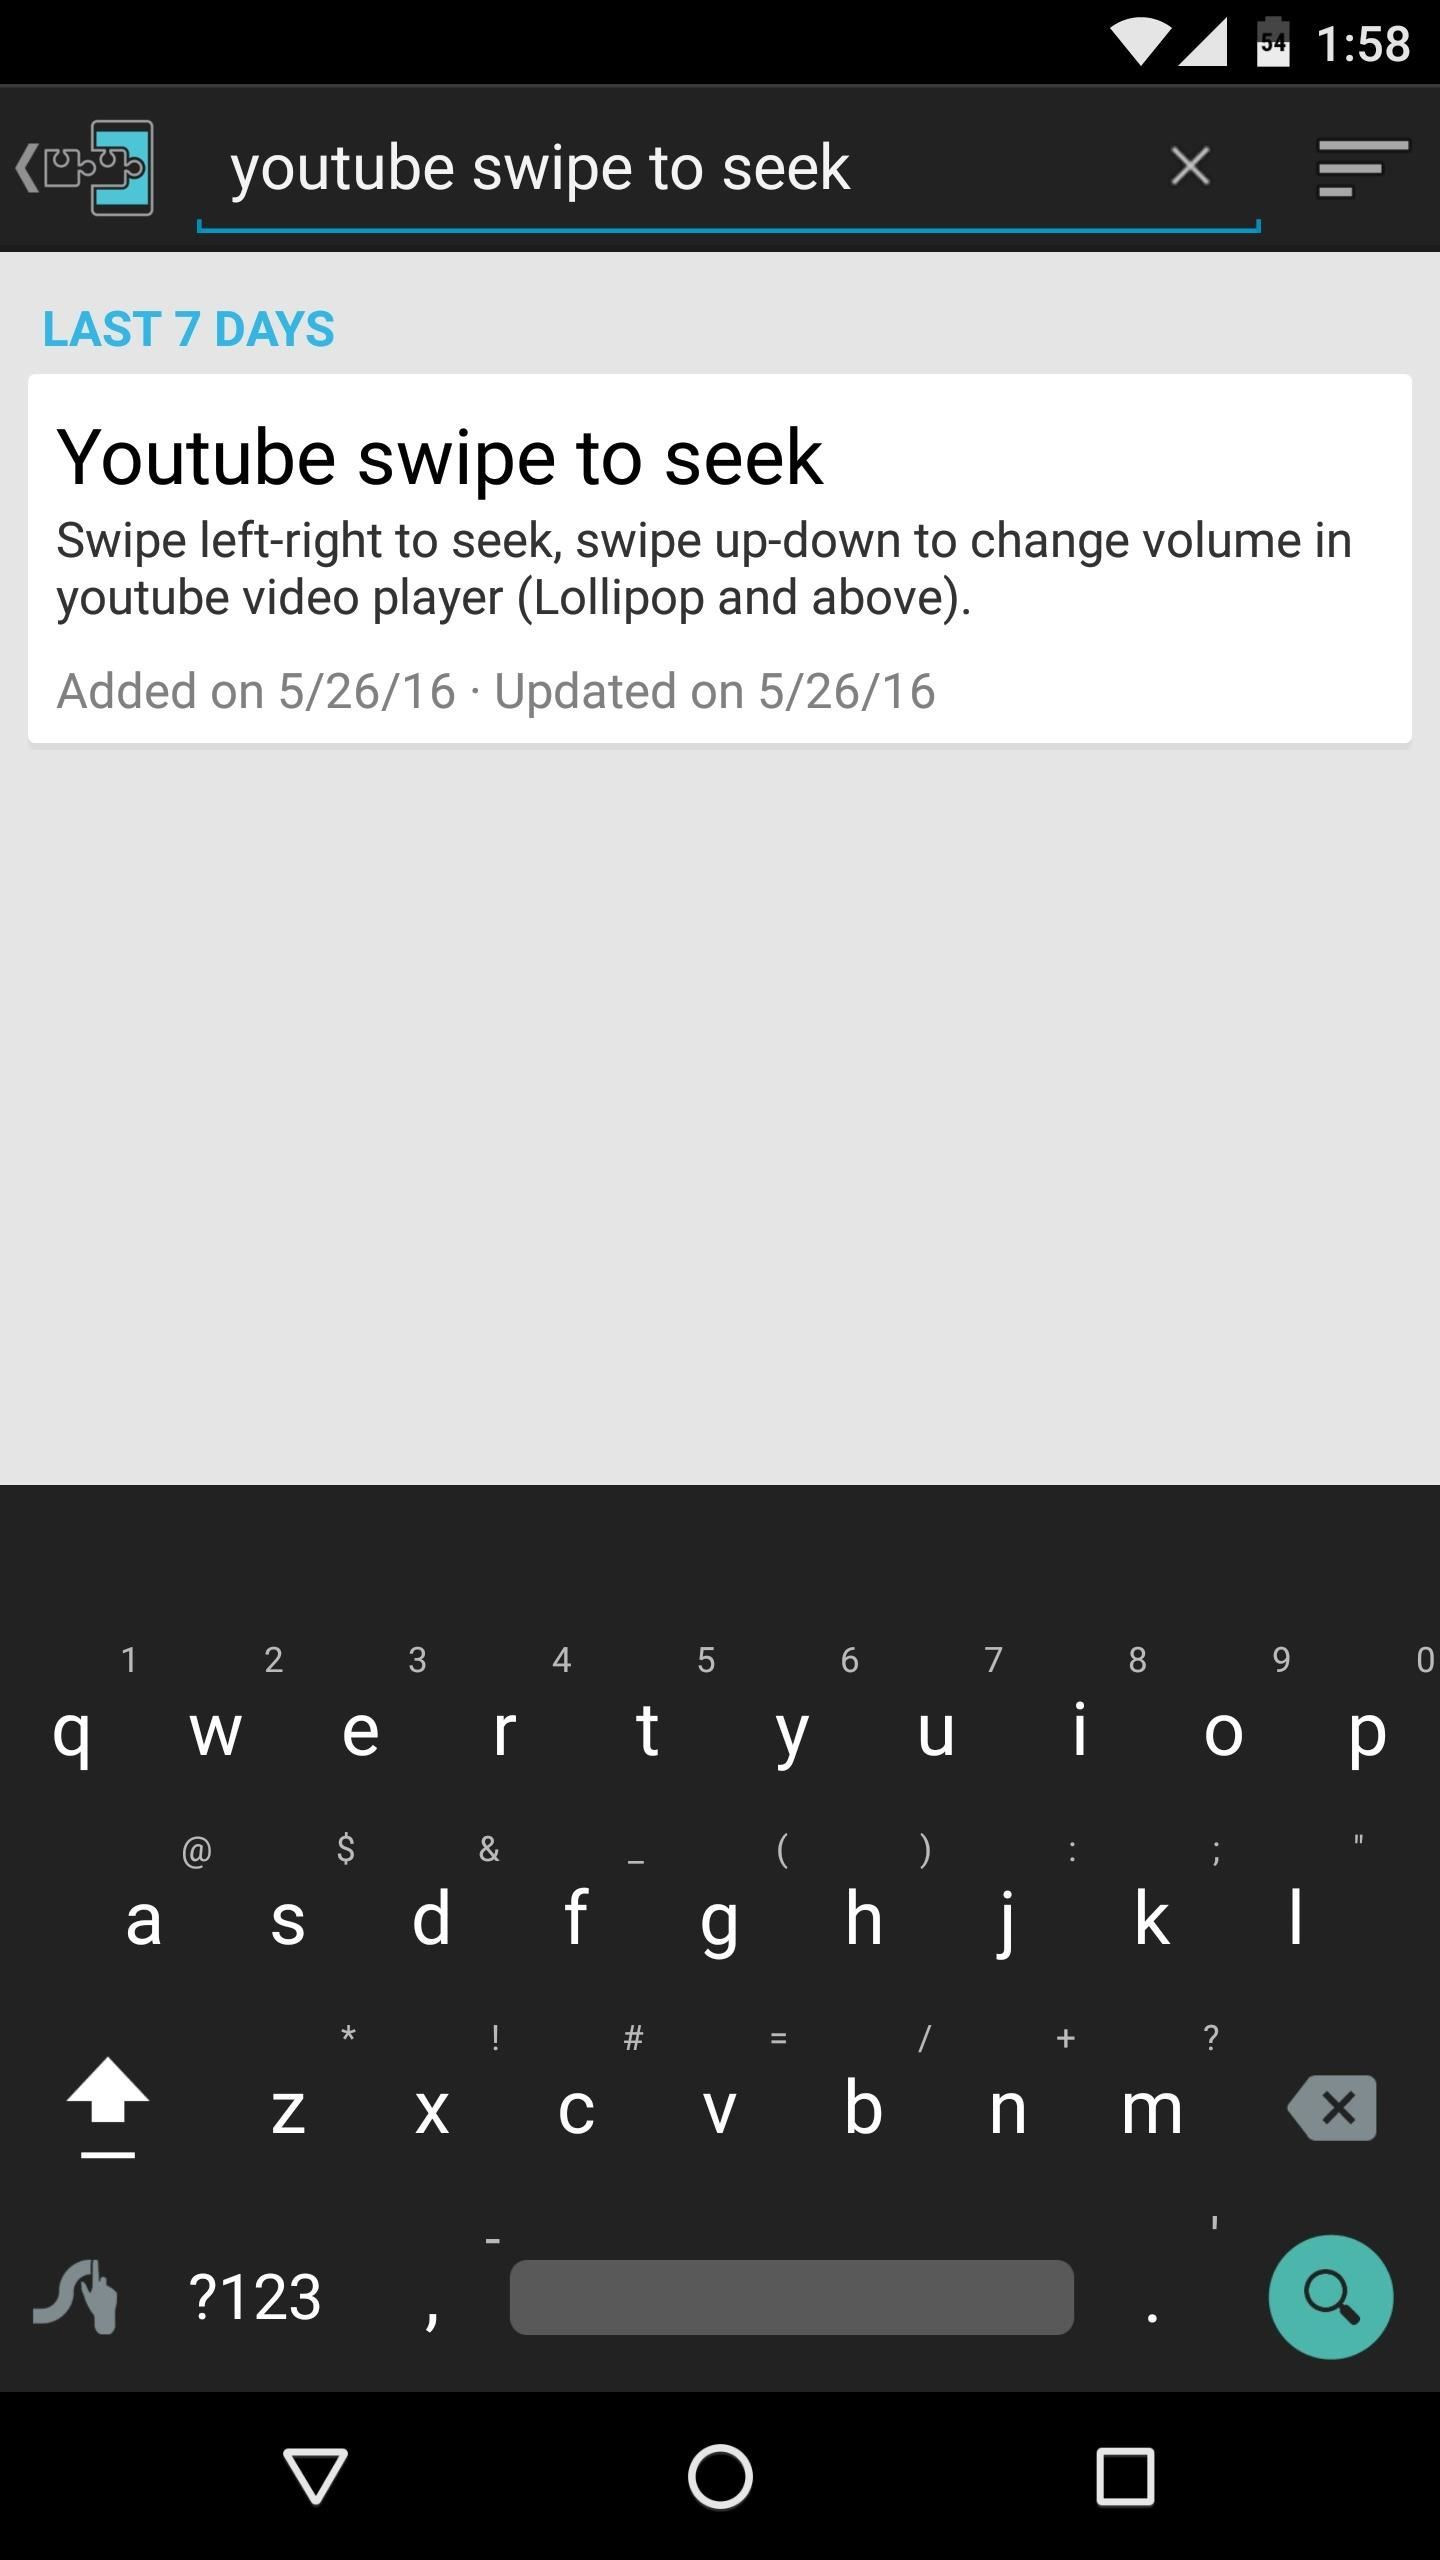 Add Swipe Actions to YouTube for Easier Volume & Seek Control